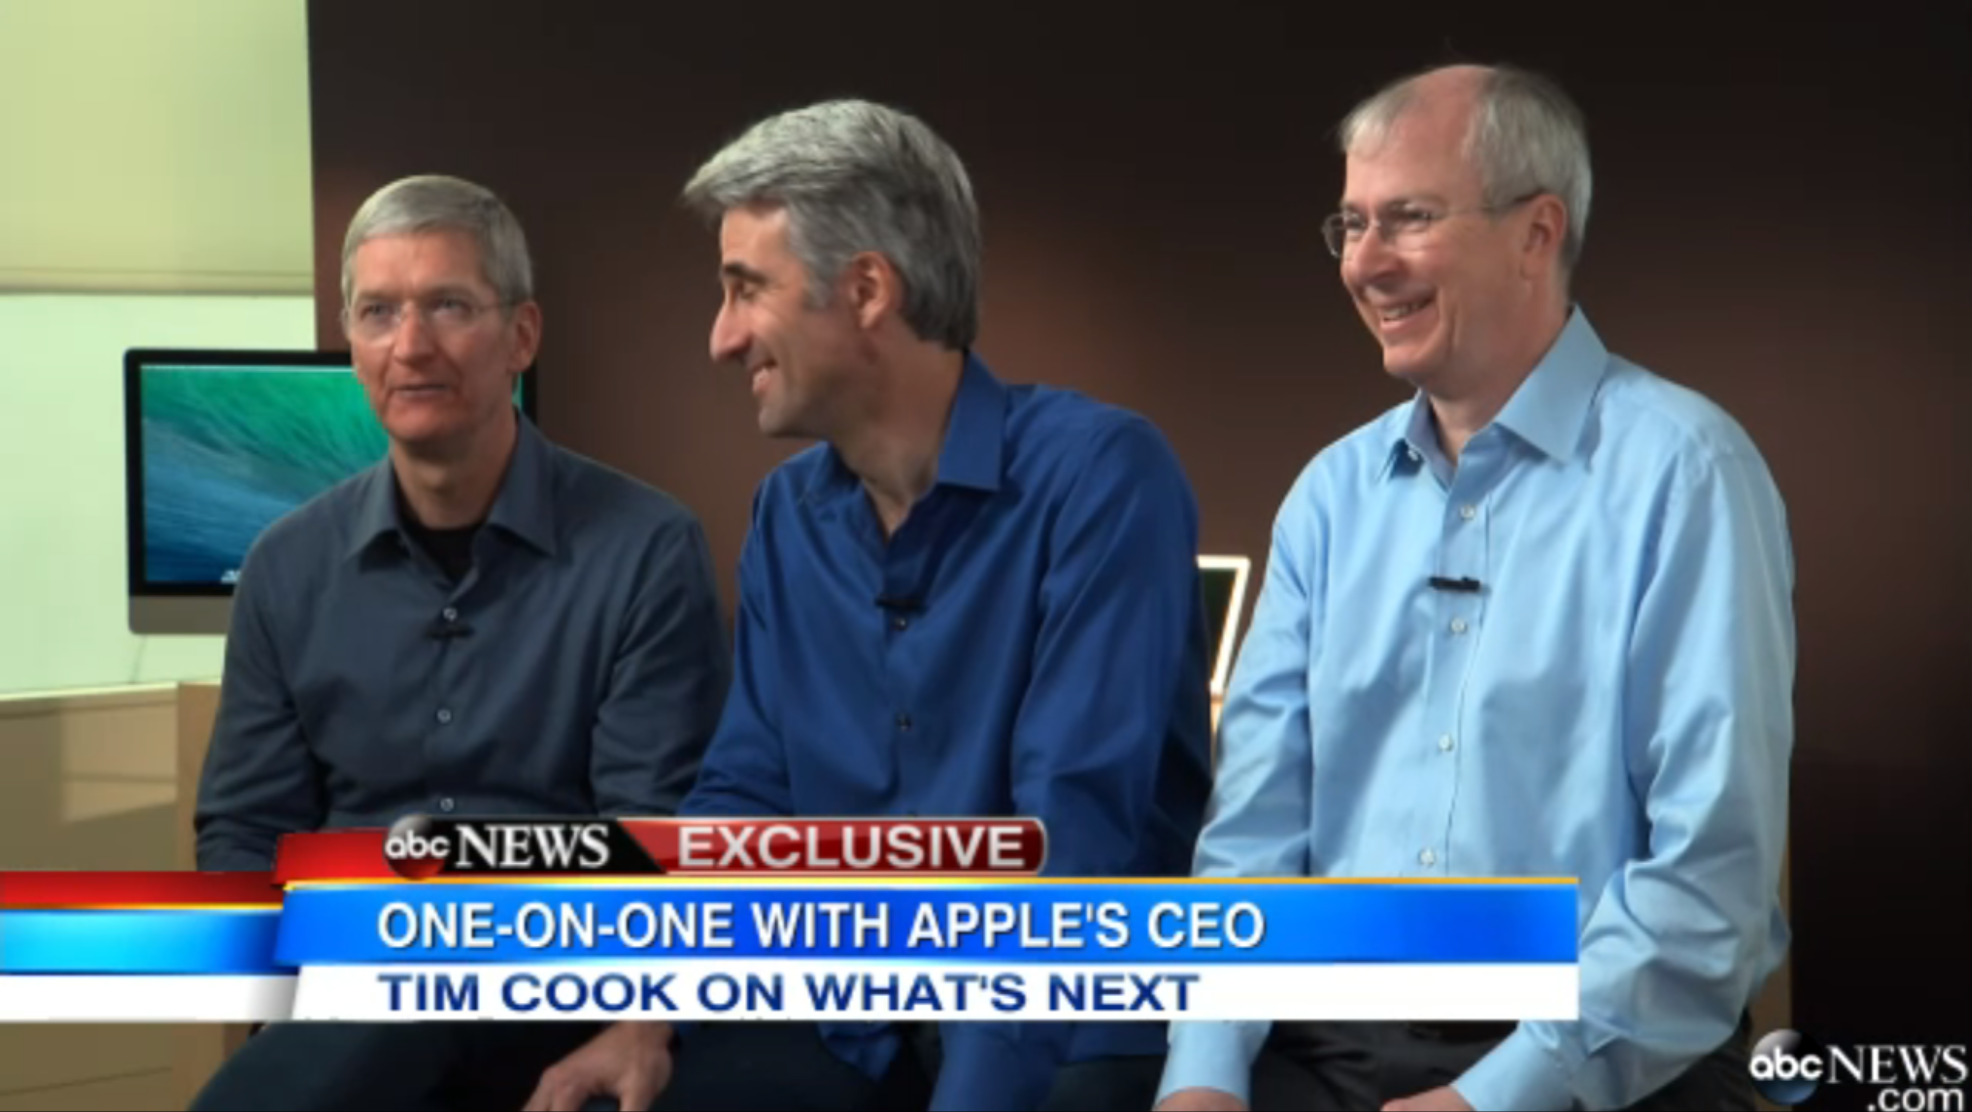 Tim Cook Craig Federighi Talk 30 Years Of Mac Secrecy Nsa And Sapphire Crystal In Abc Interview 9to5mac